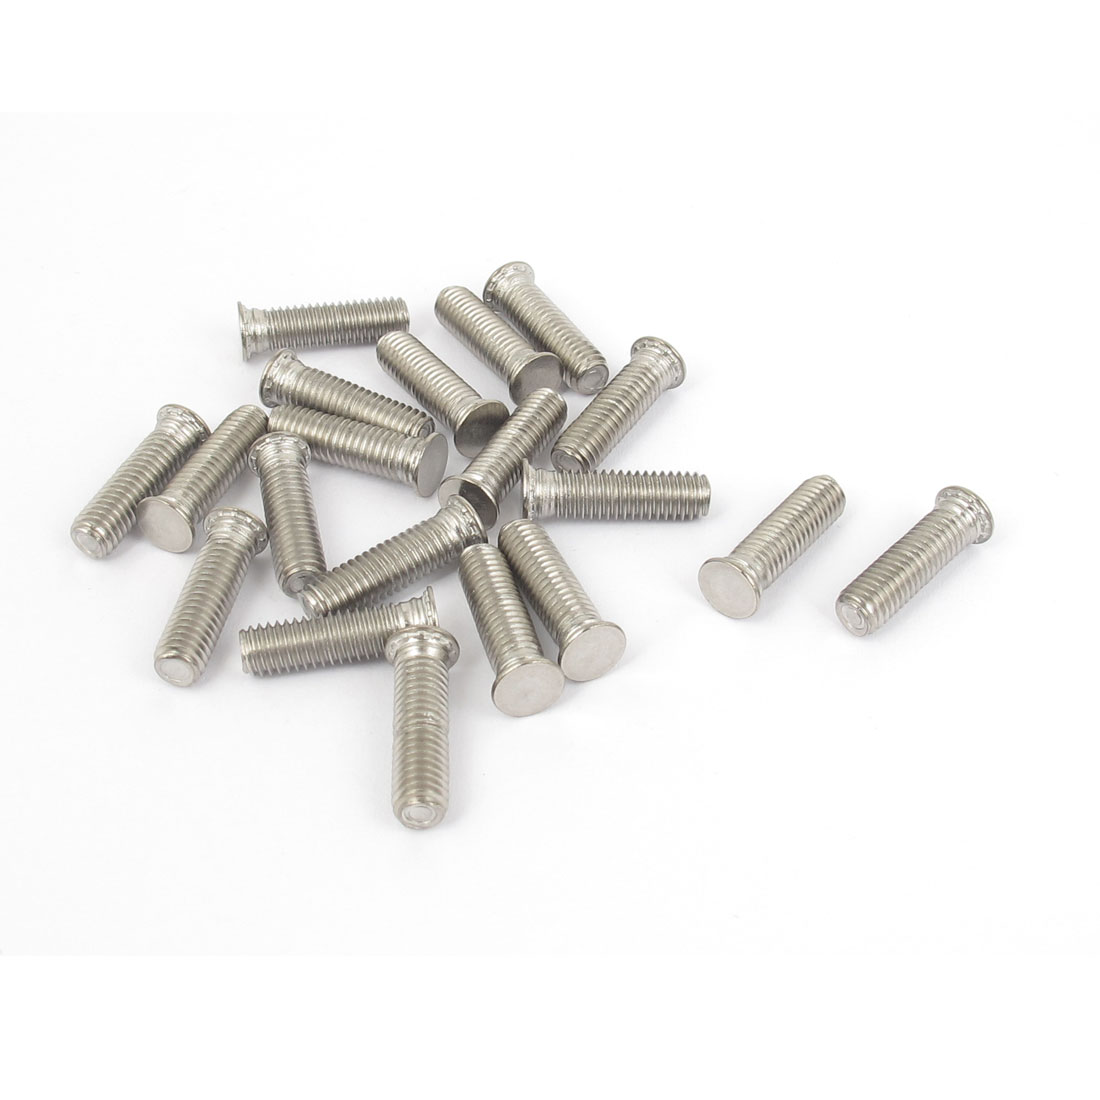 M5x18mm Flush Head Stainless Steel Self Clinching Threaded Studs Fastener 20pcs